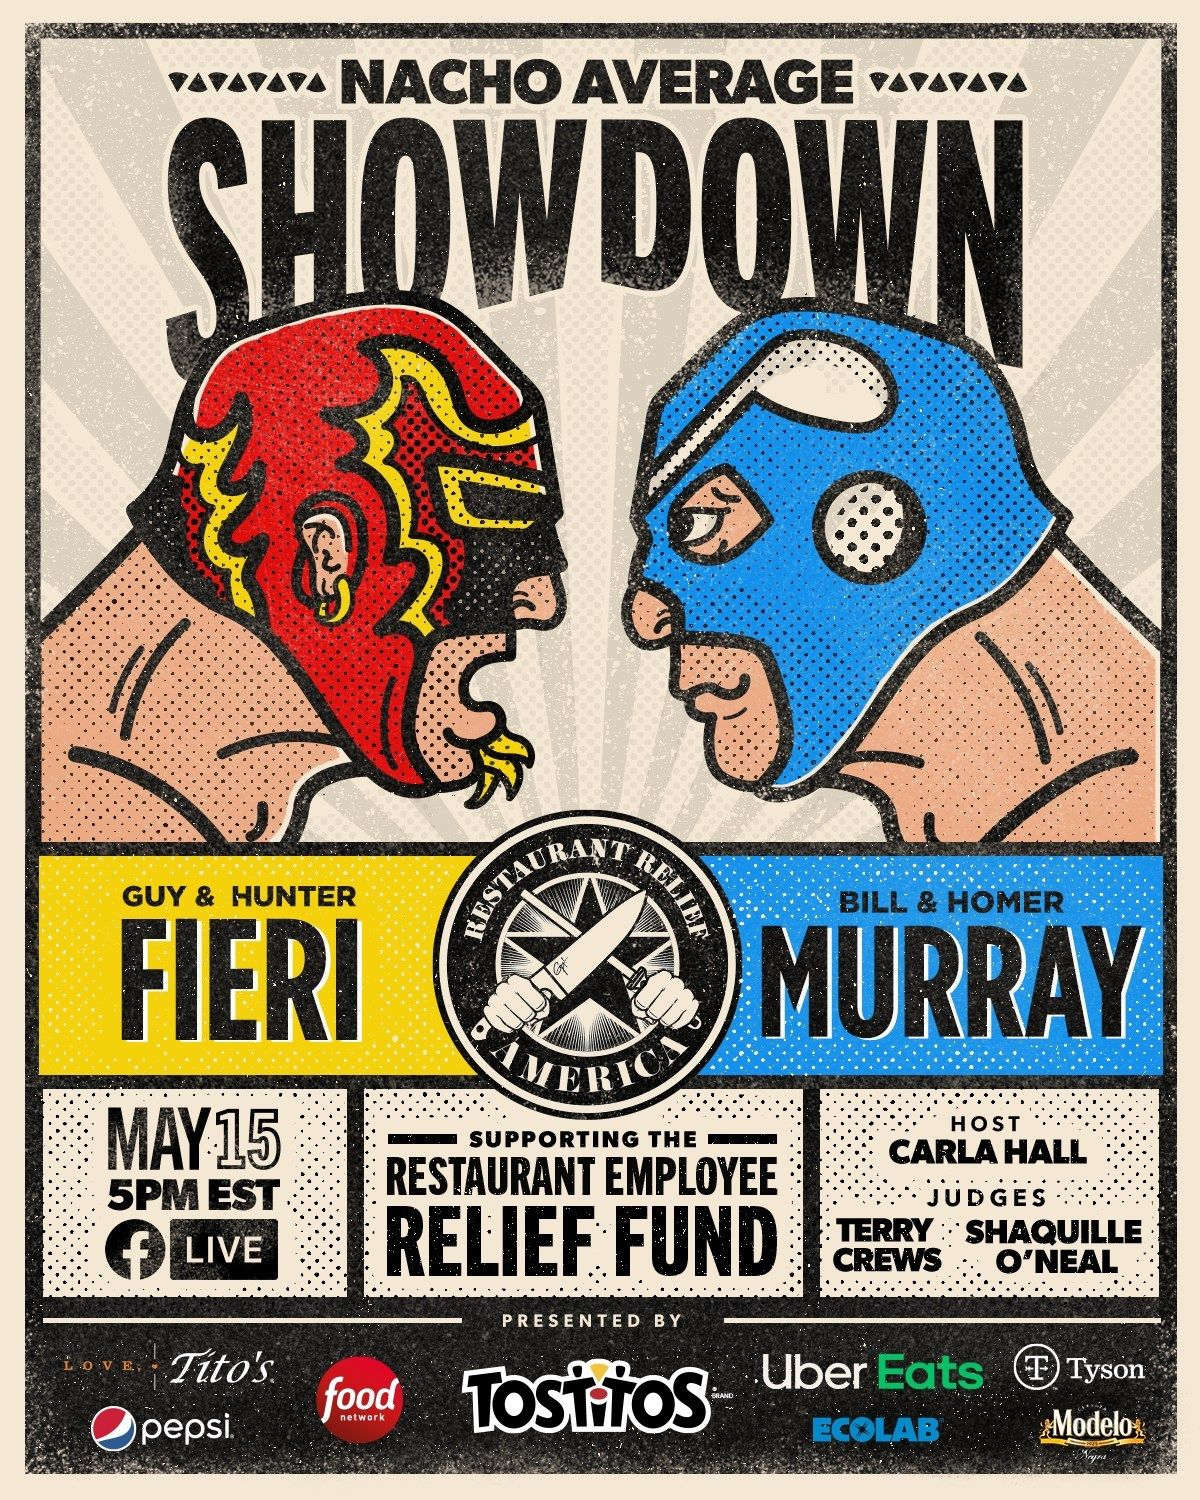 Guy Fieri And Bill Murray Go Head-to-Head In 'Nacho Average Showdown' Benefiting The Restaurant Employee Relief Fund